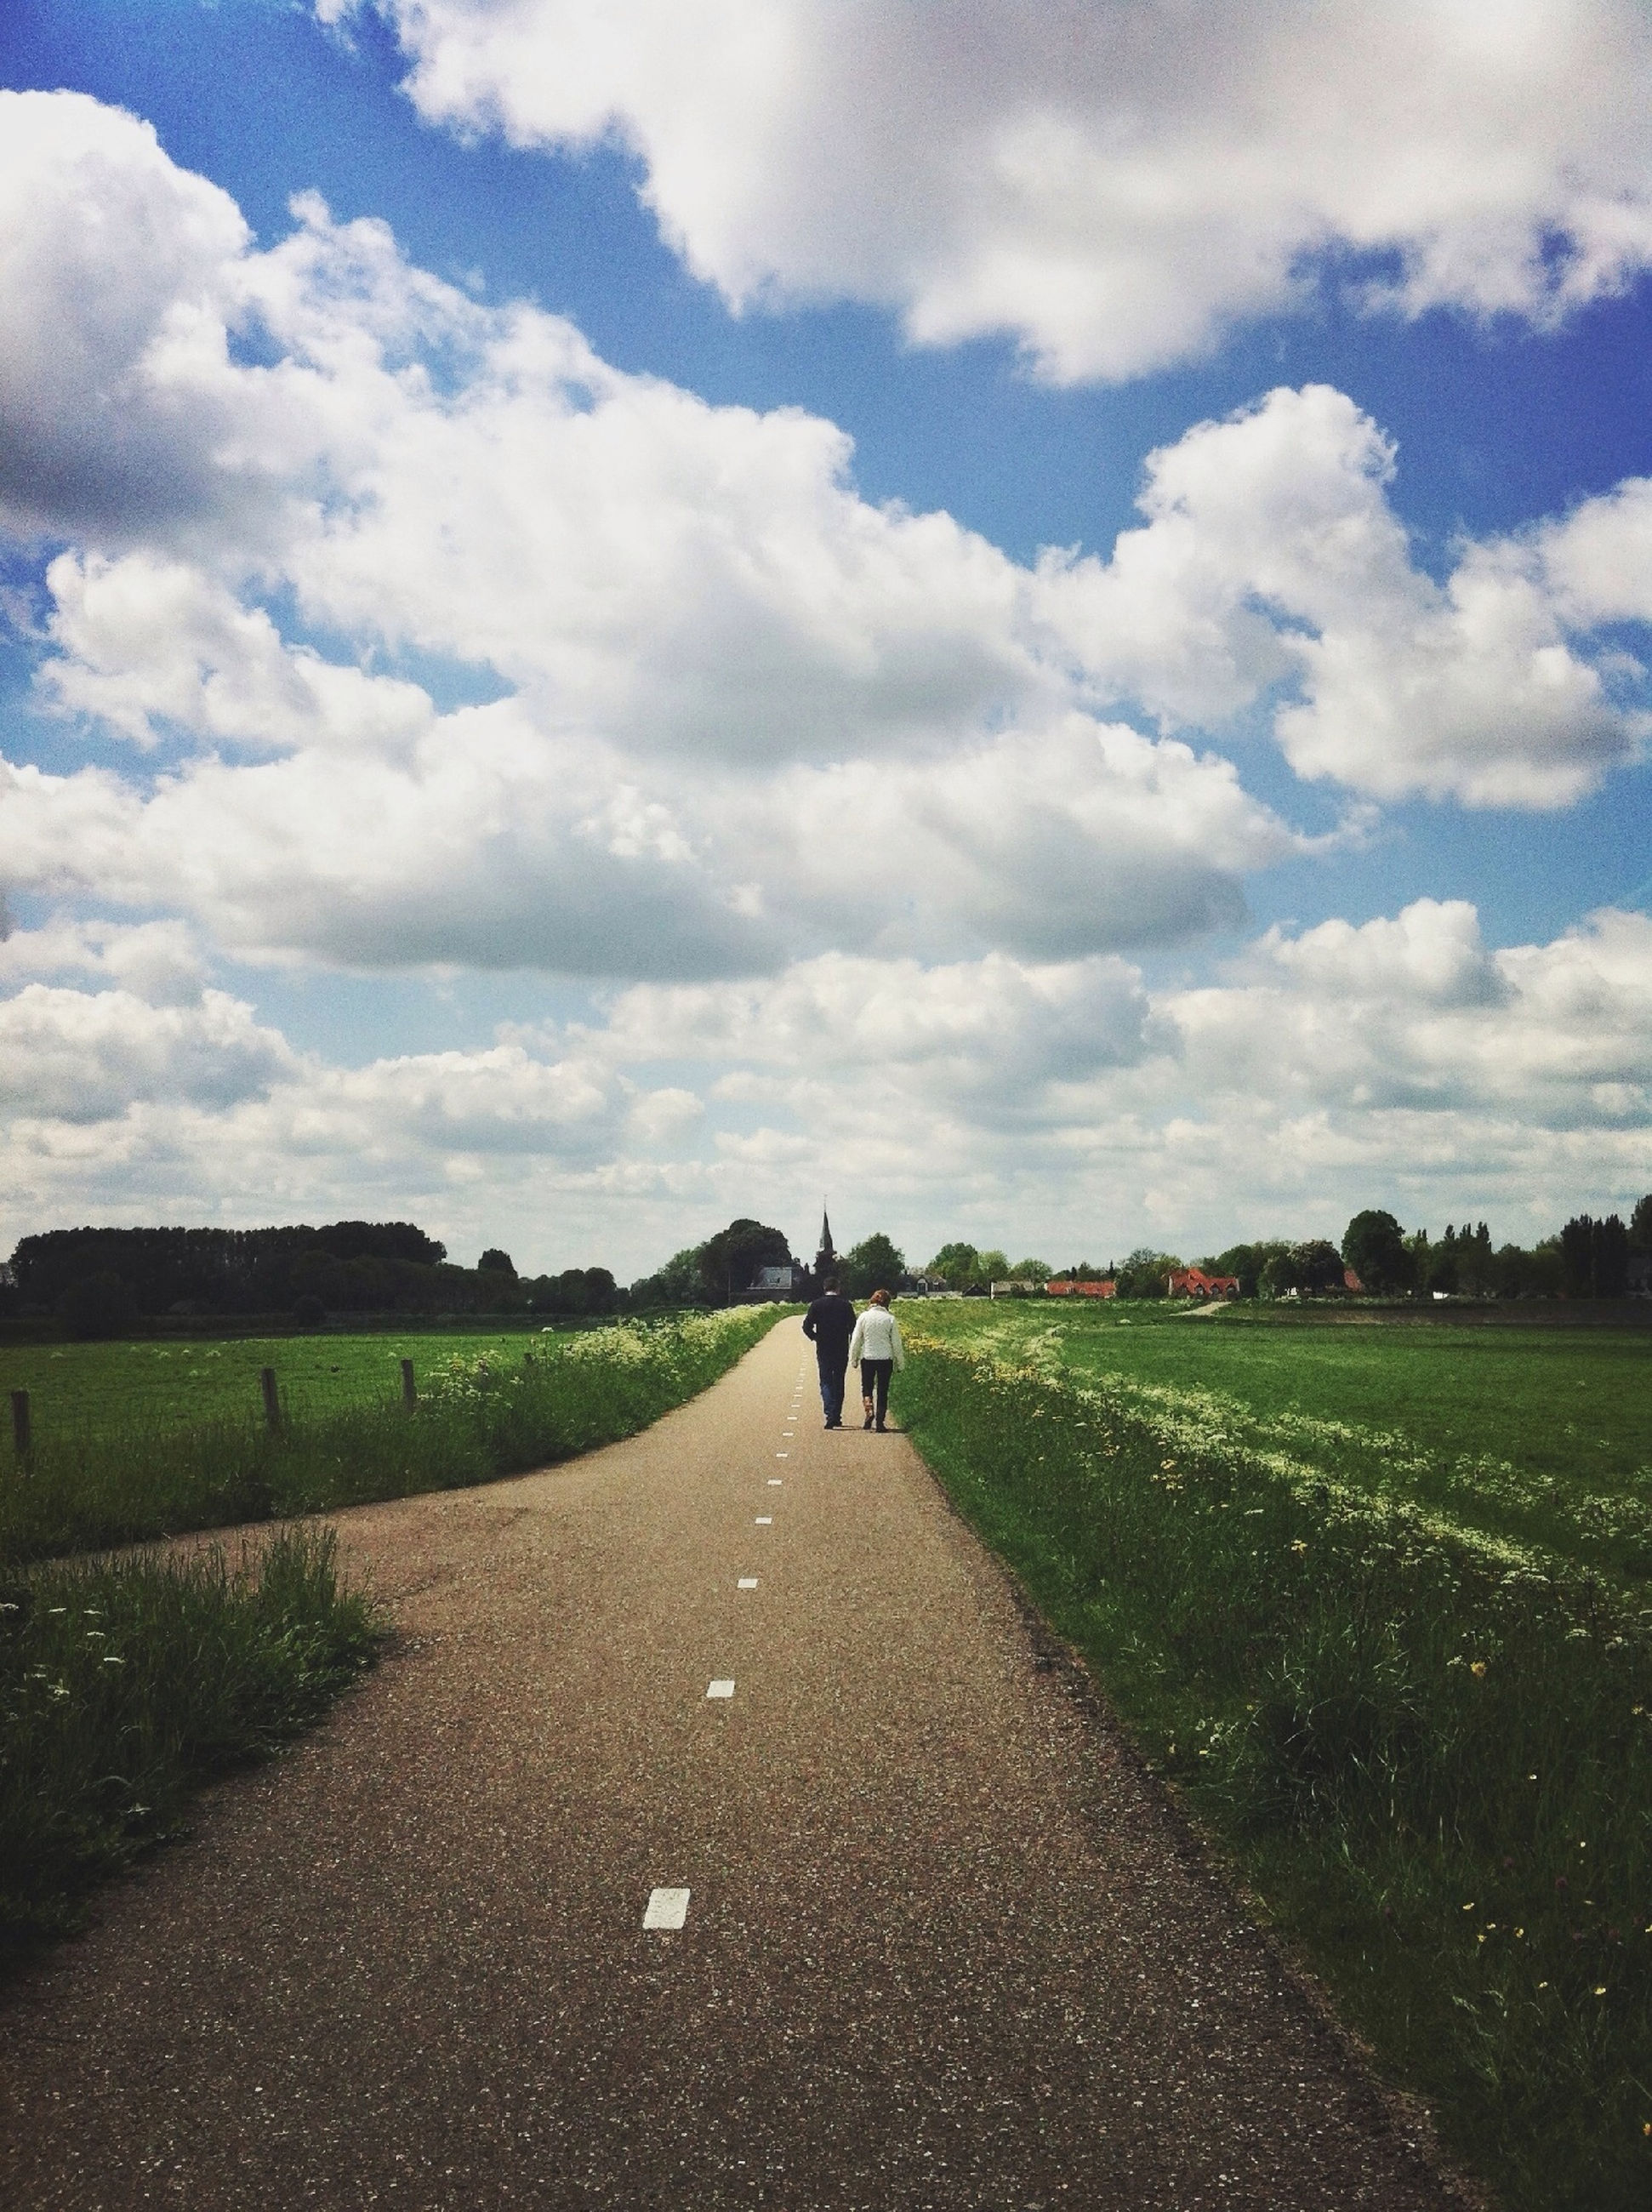 sky, the way forward, grass, field, cloud - sky, landscape, rear view, walking, full length, road, tranquility, cloud, diminishing perspective, tranquil scene, men, cloudy, nature, lifestyles